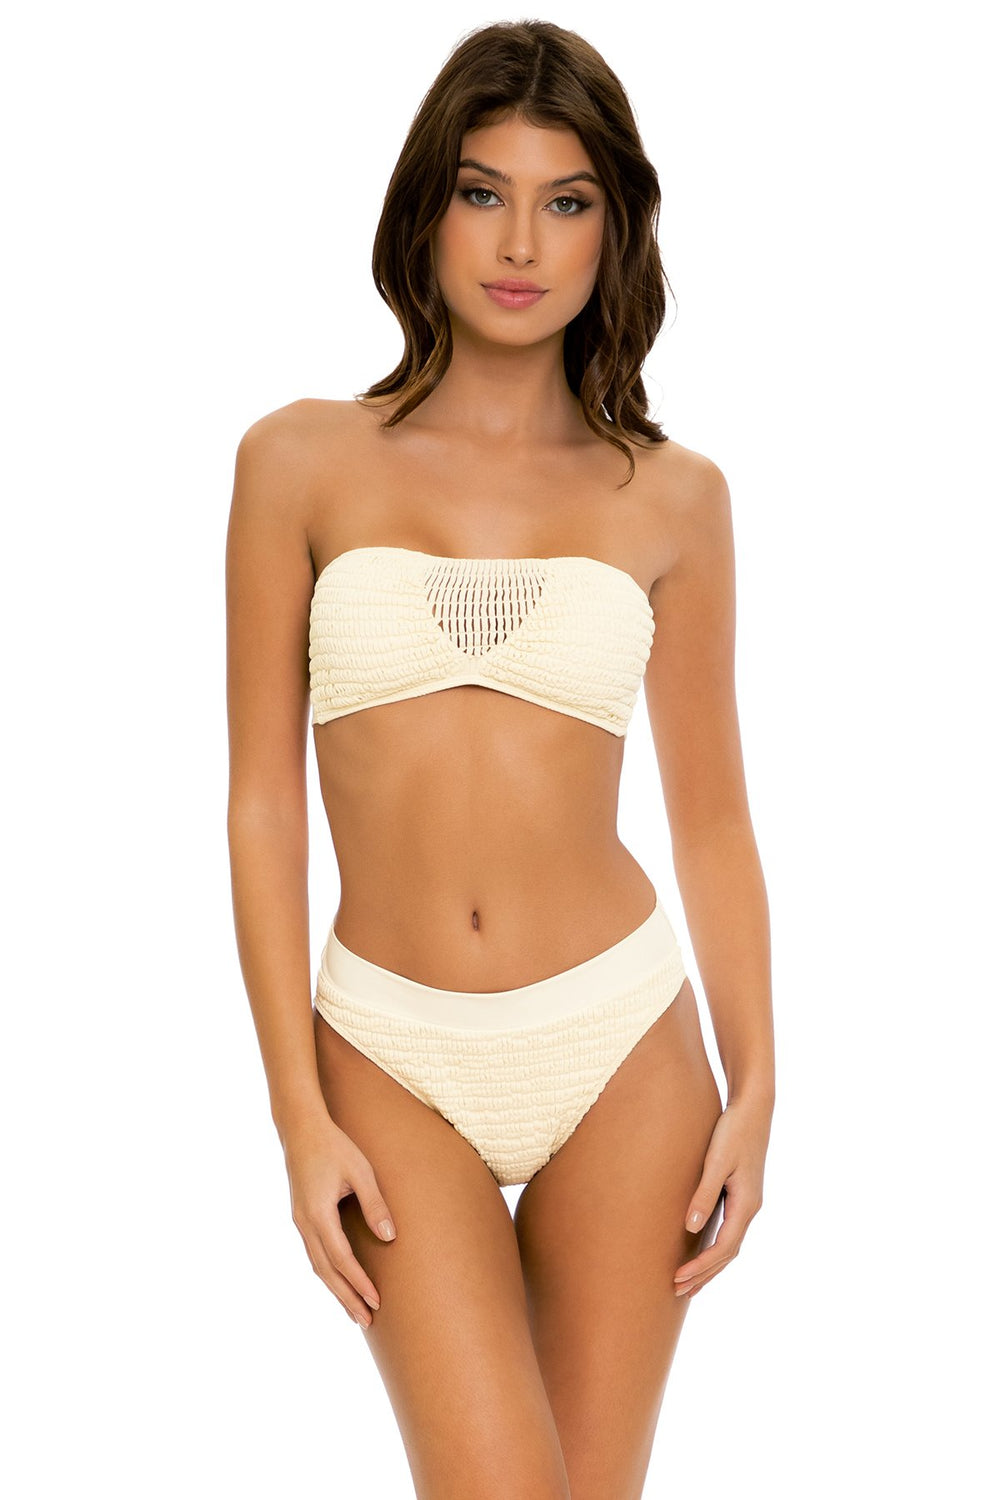 DESERT STAR - Bandeau Top & High Leg Banded Waist Bottom • Ivory